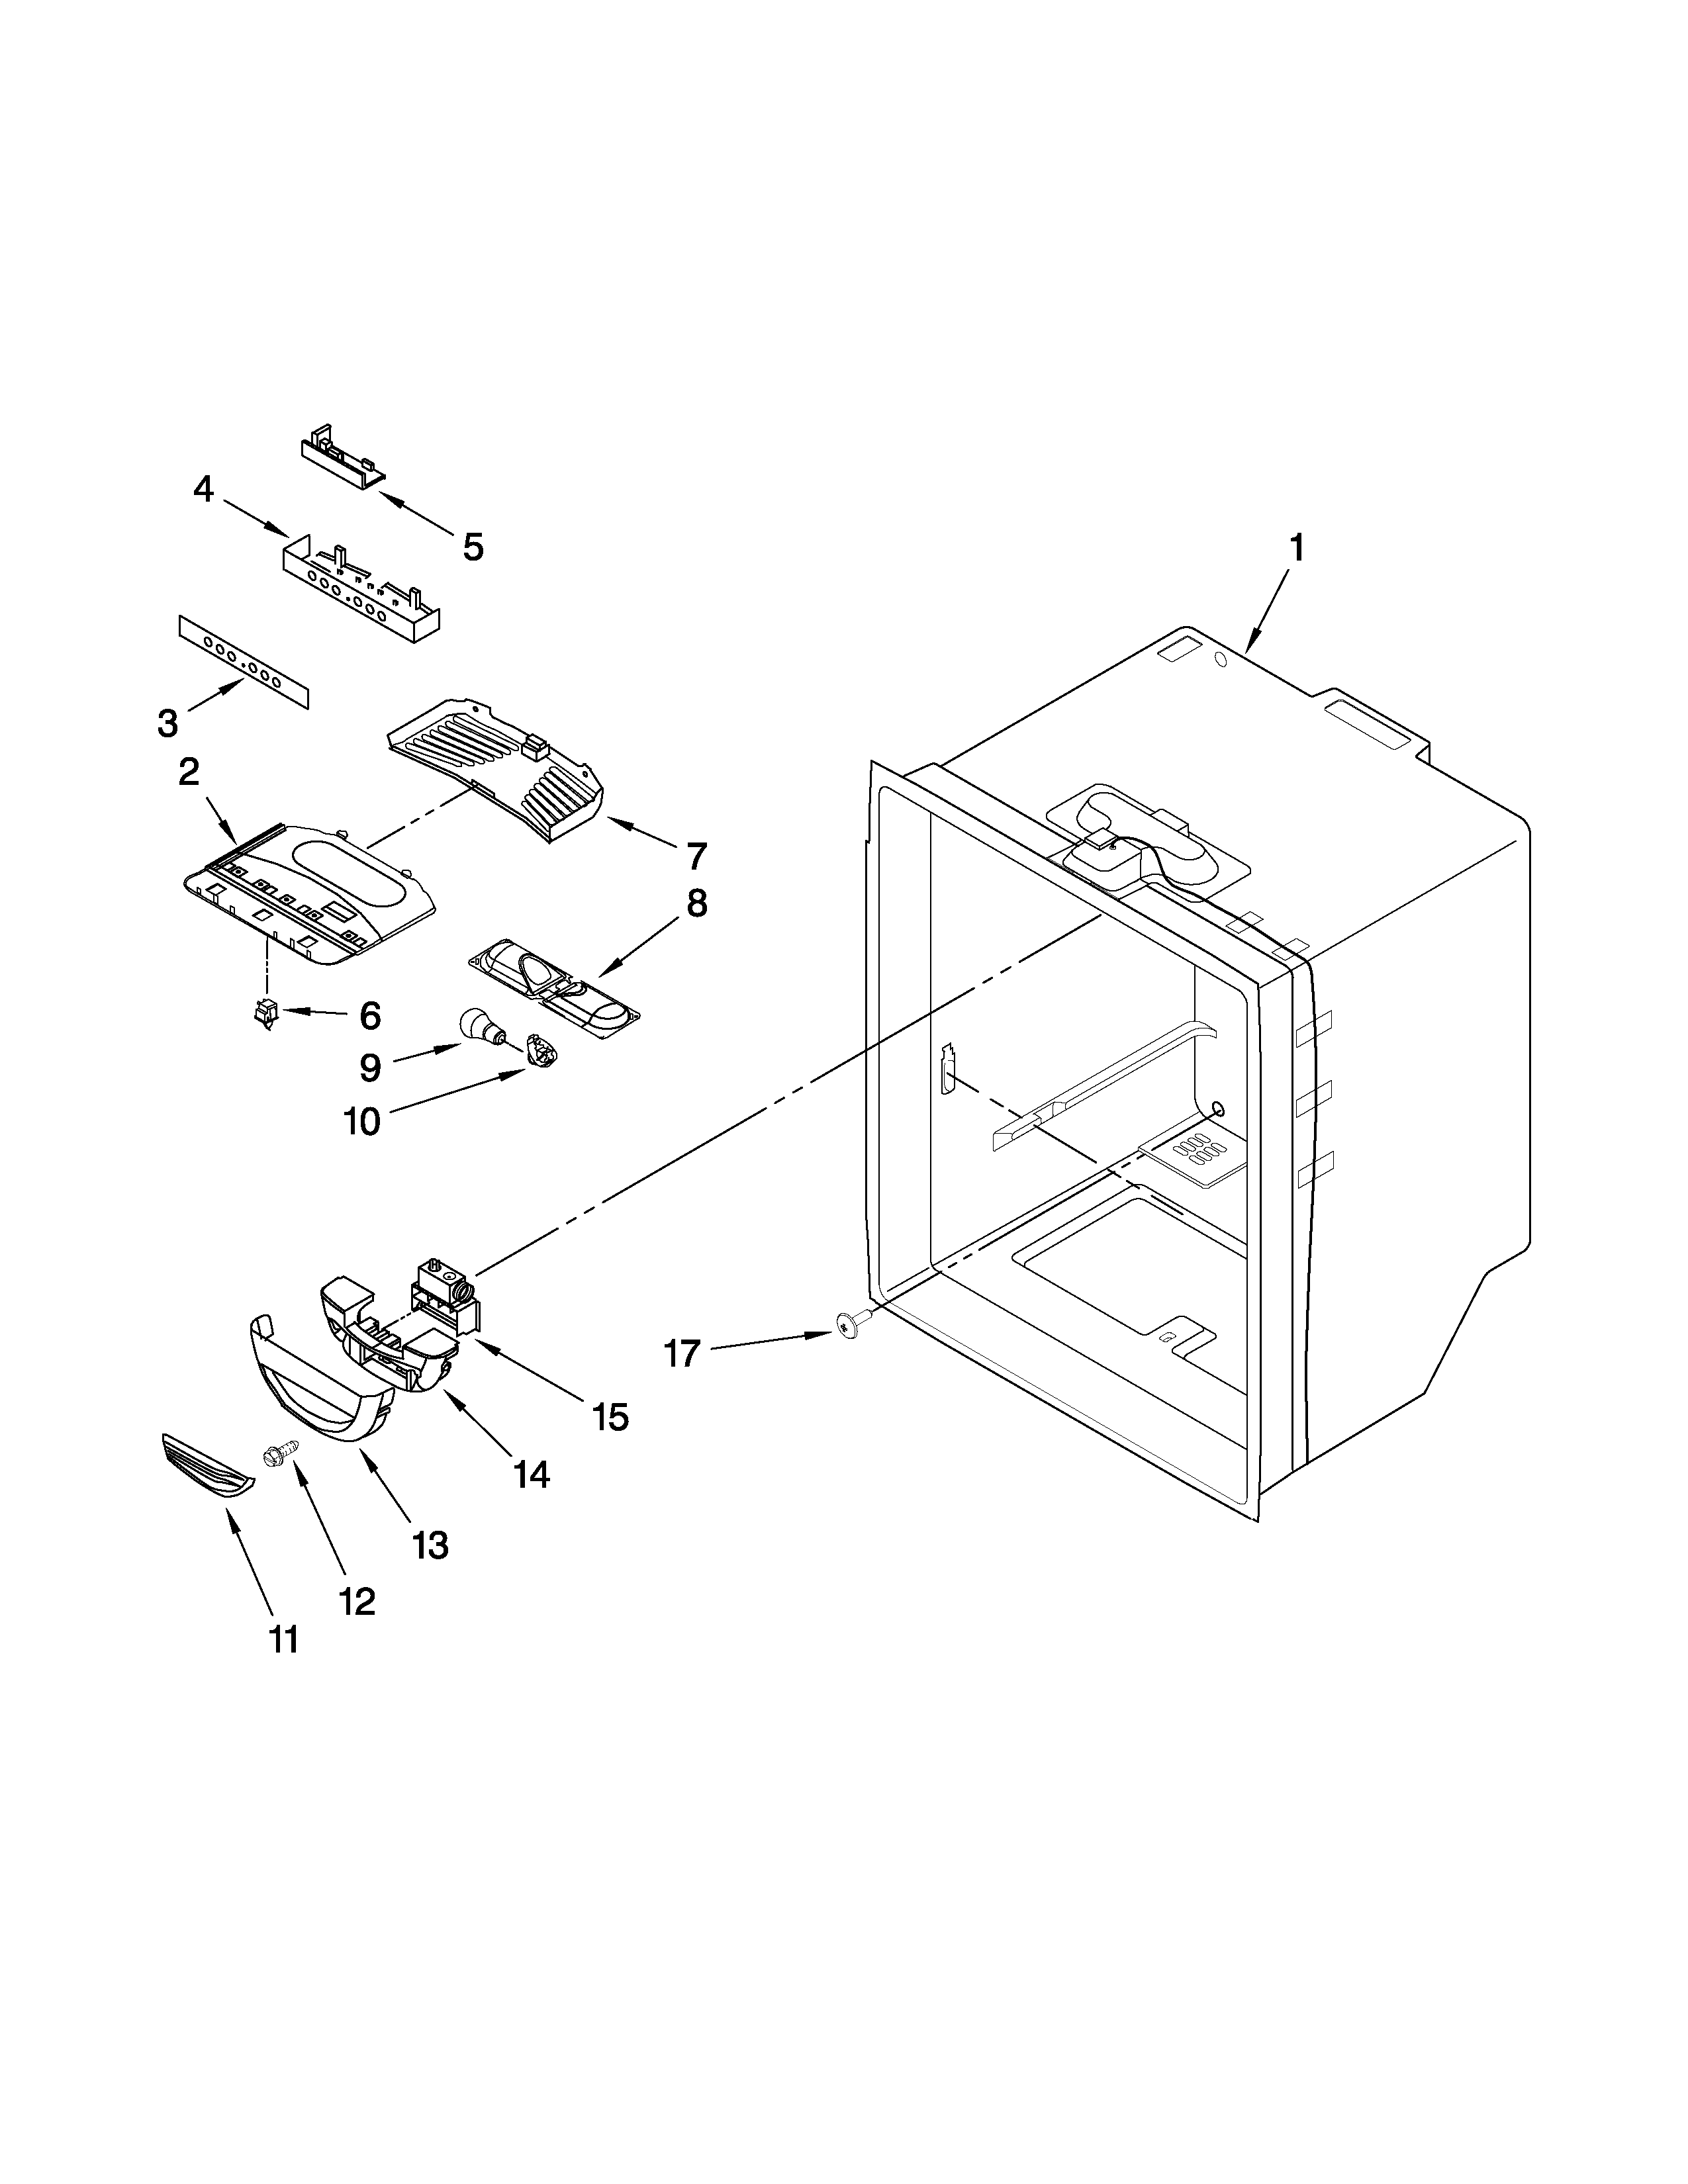 Whirlpool GB9FHDXWQ01 refrigerator liner parts diagram